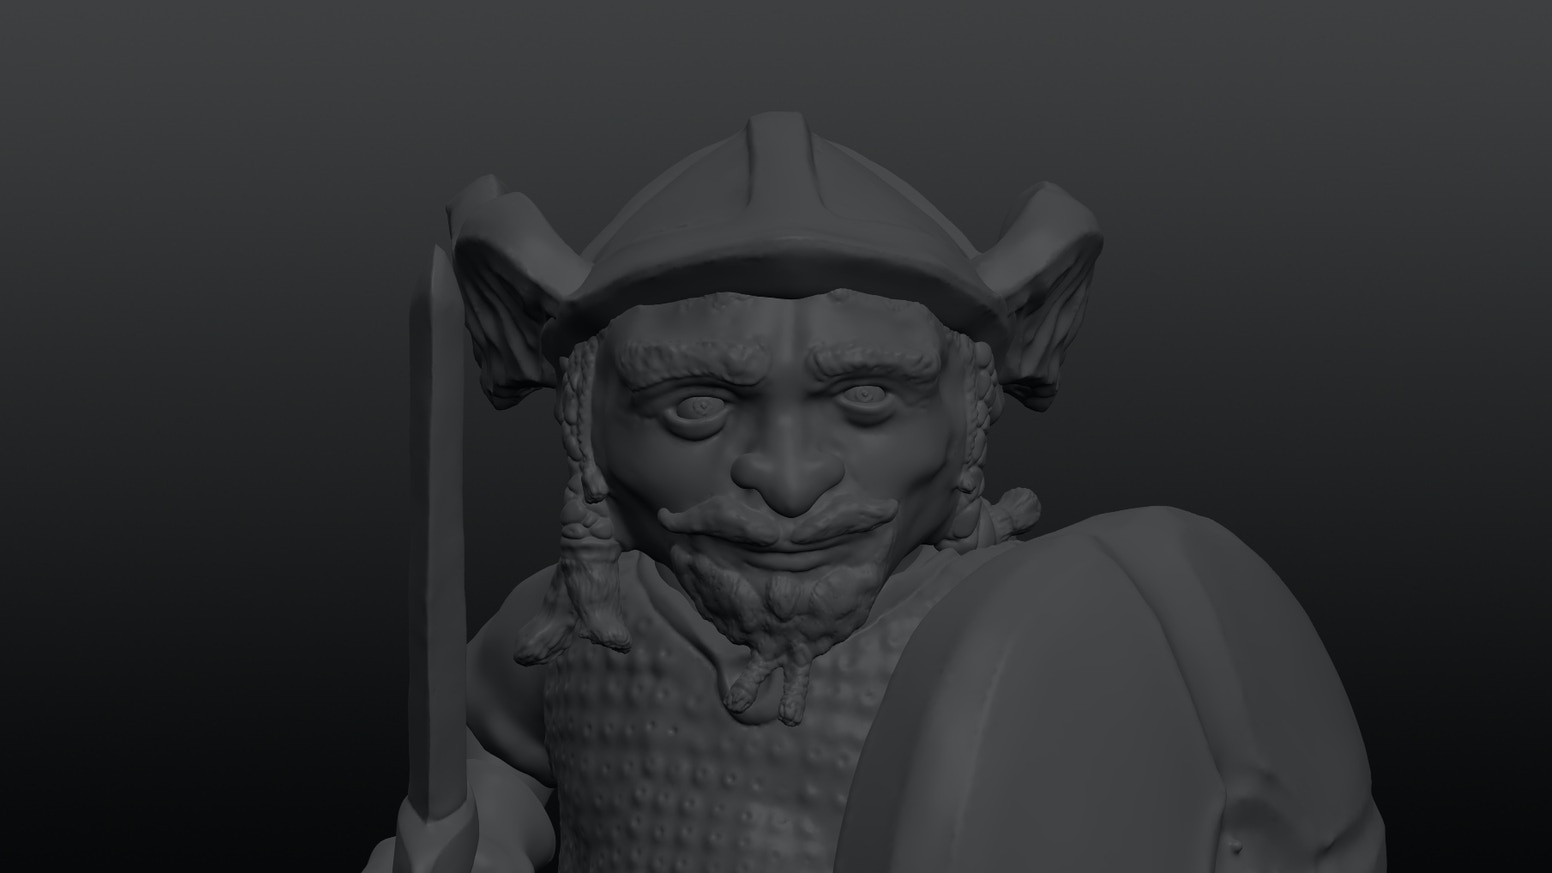 A simple walk-through showing you how to create your own dwarf models for 3D printing using the free software package Sculptris.